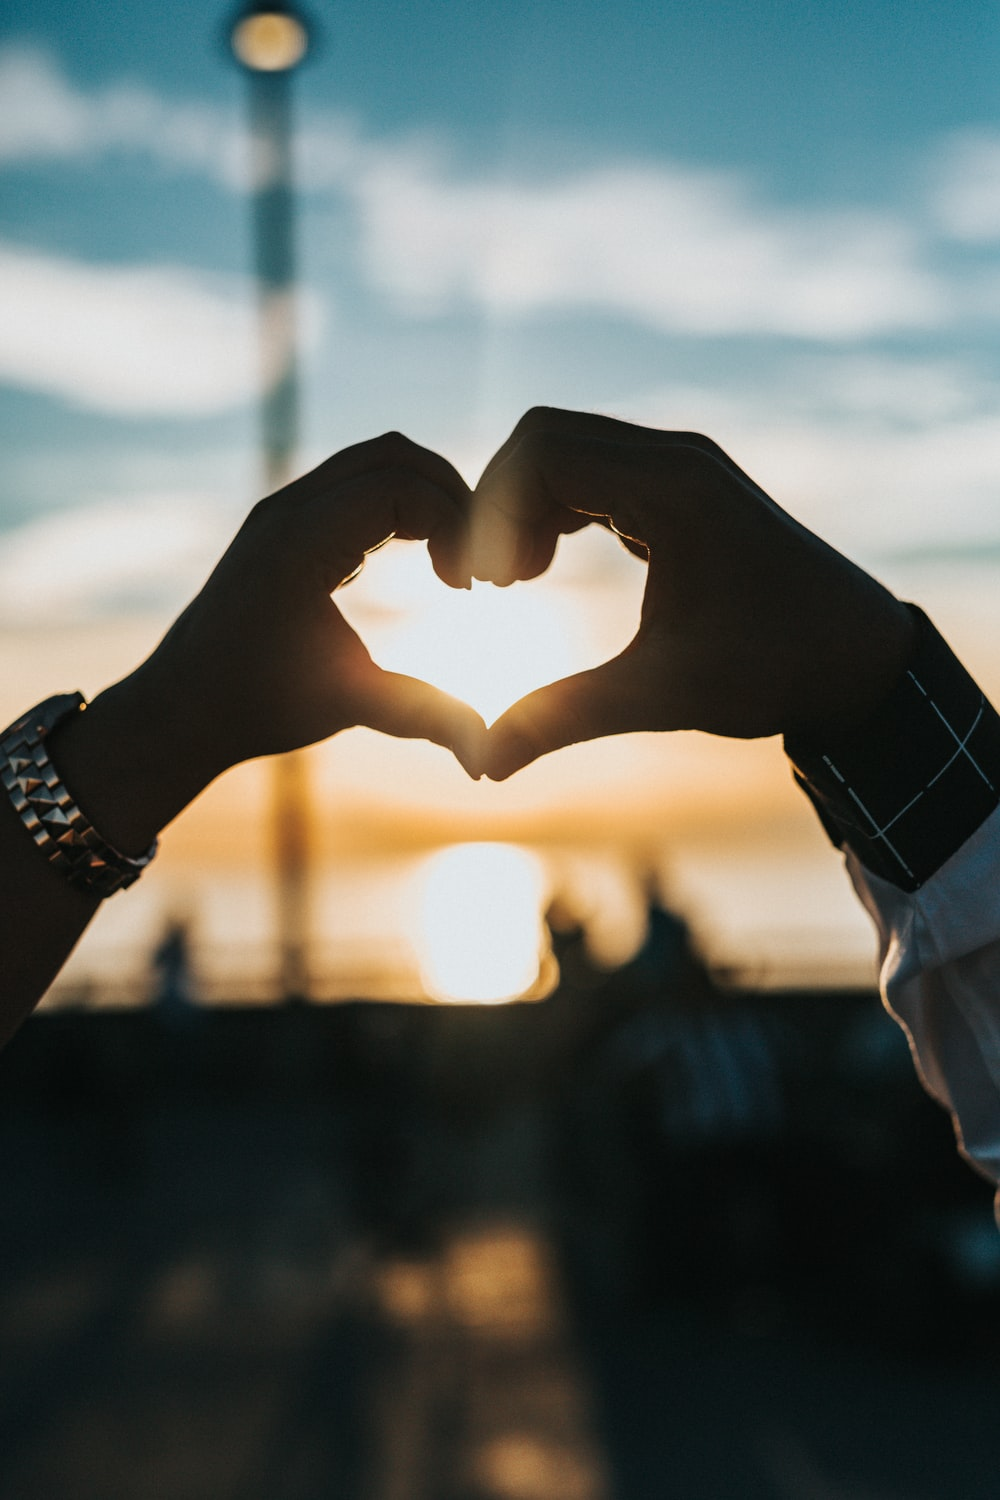 Person Forming Heart With Their Hands Photo Free Love Image On